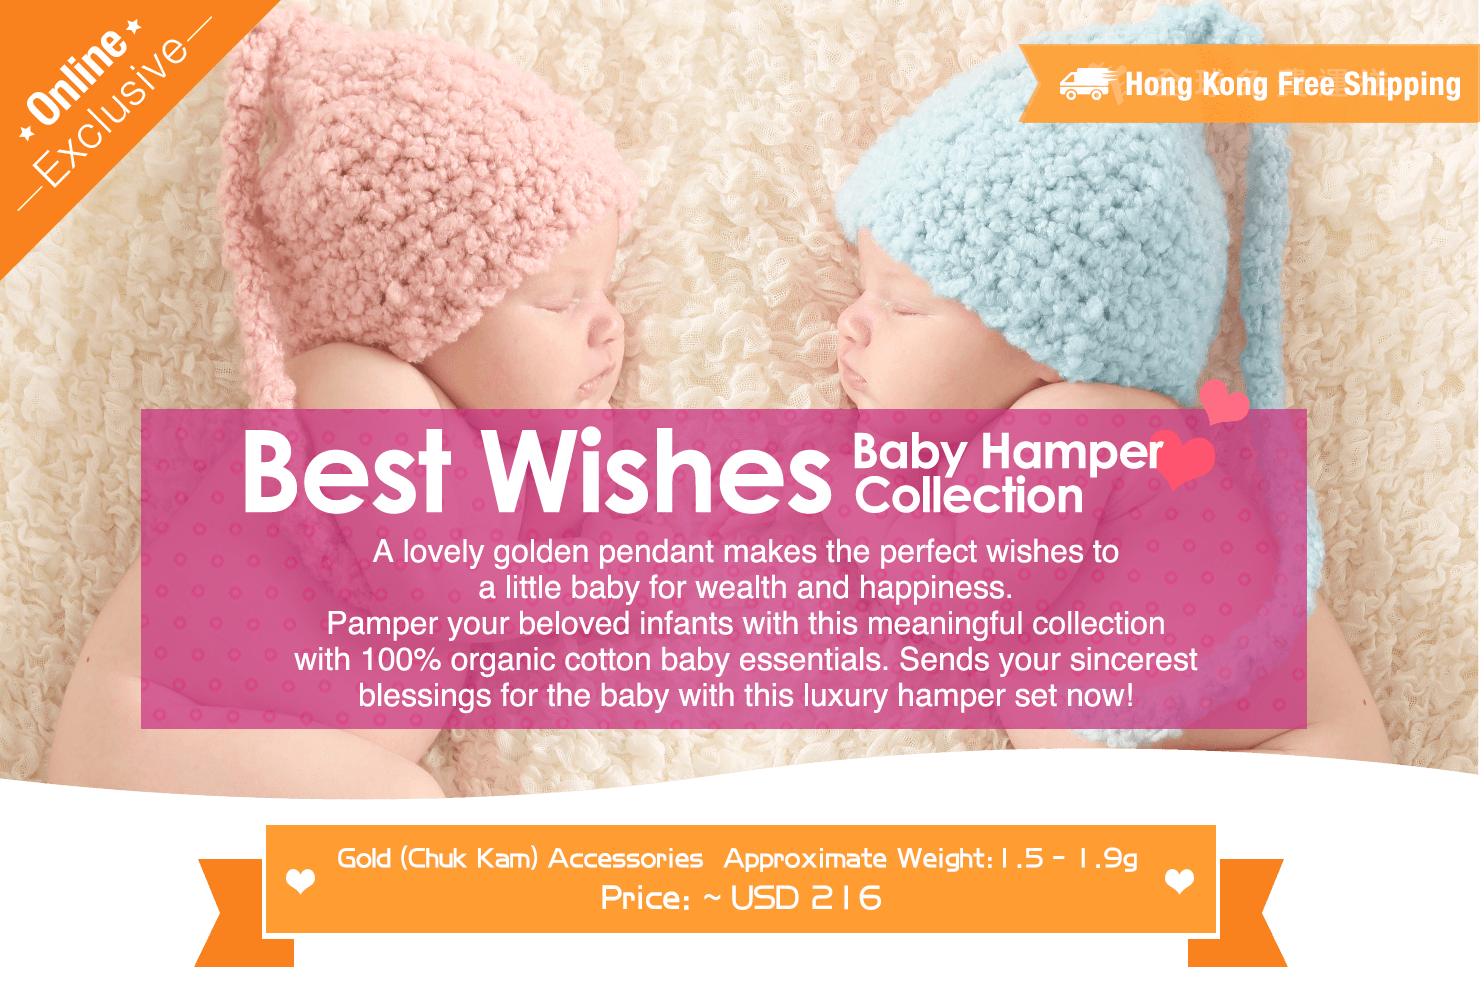 Best Wishes Baby Hamper Gifting Collection Desktop